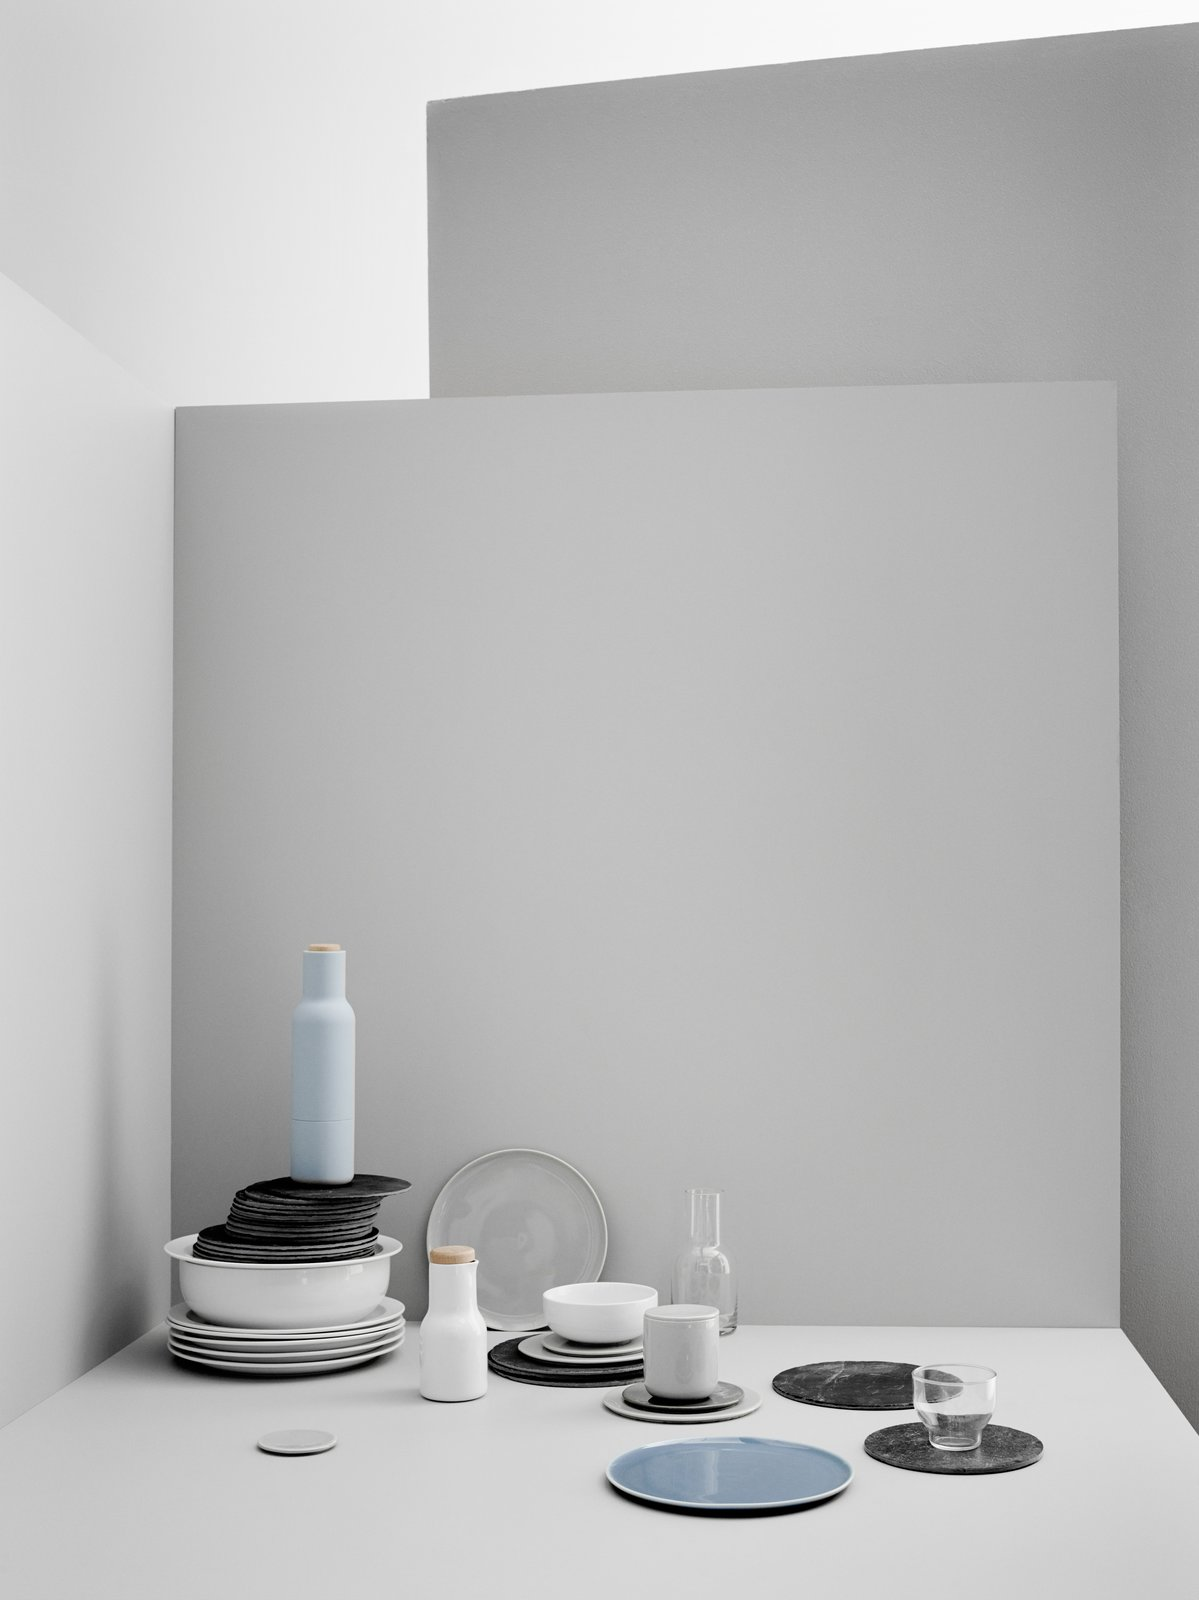 The Norm Dinnerware Collection for Copenhagen restaurant Höst is defined by its simple silhouettes, evocative color palette, and versatility. It includes plates, bowls, and glassware.